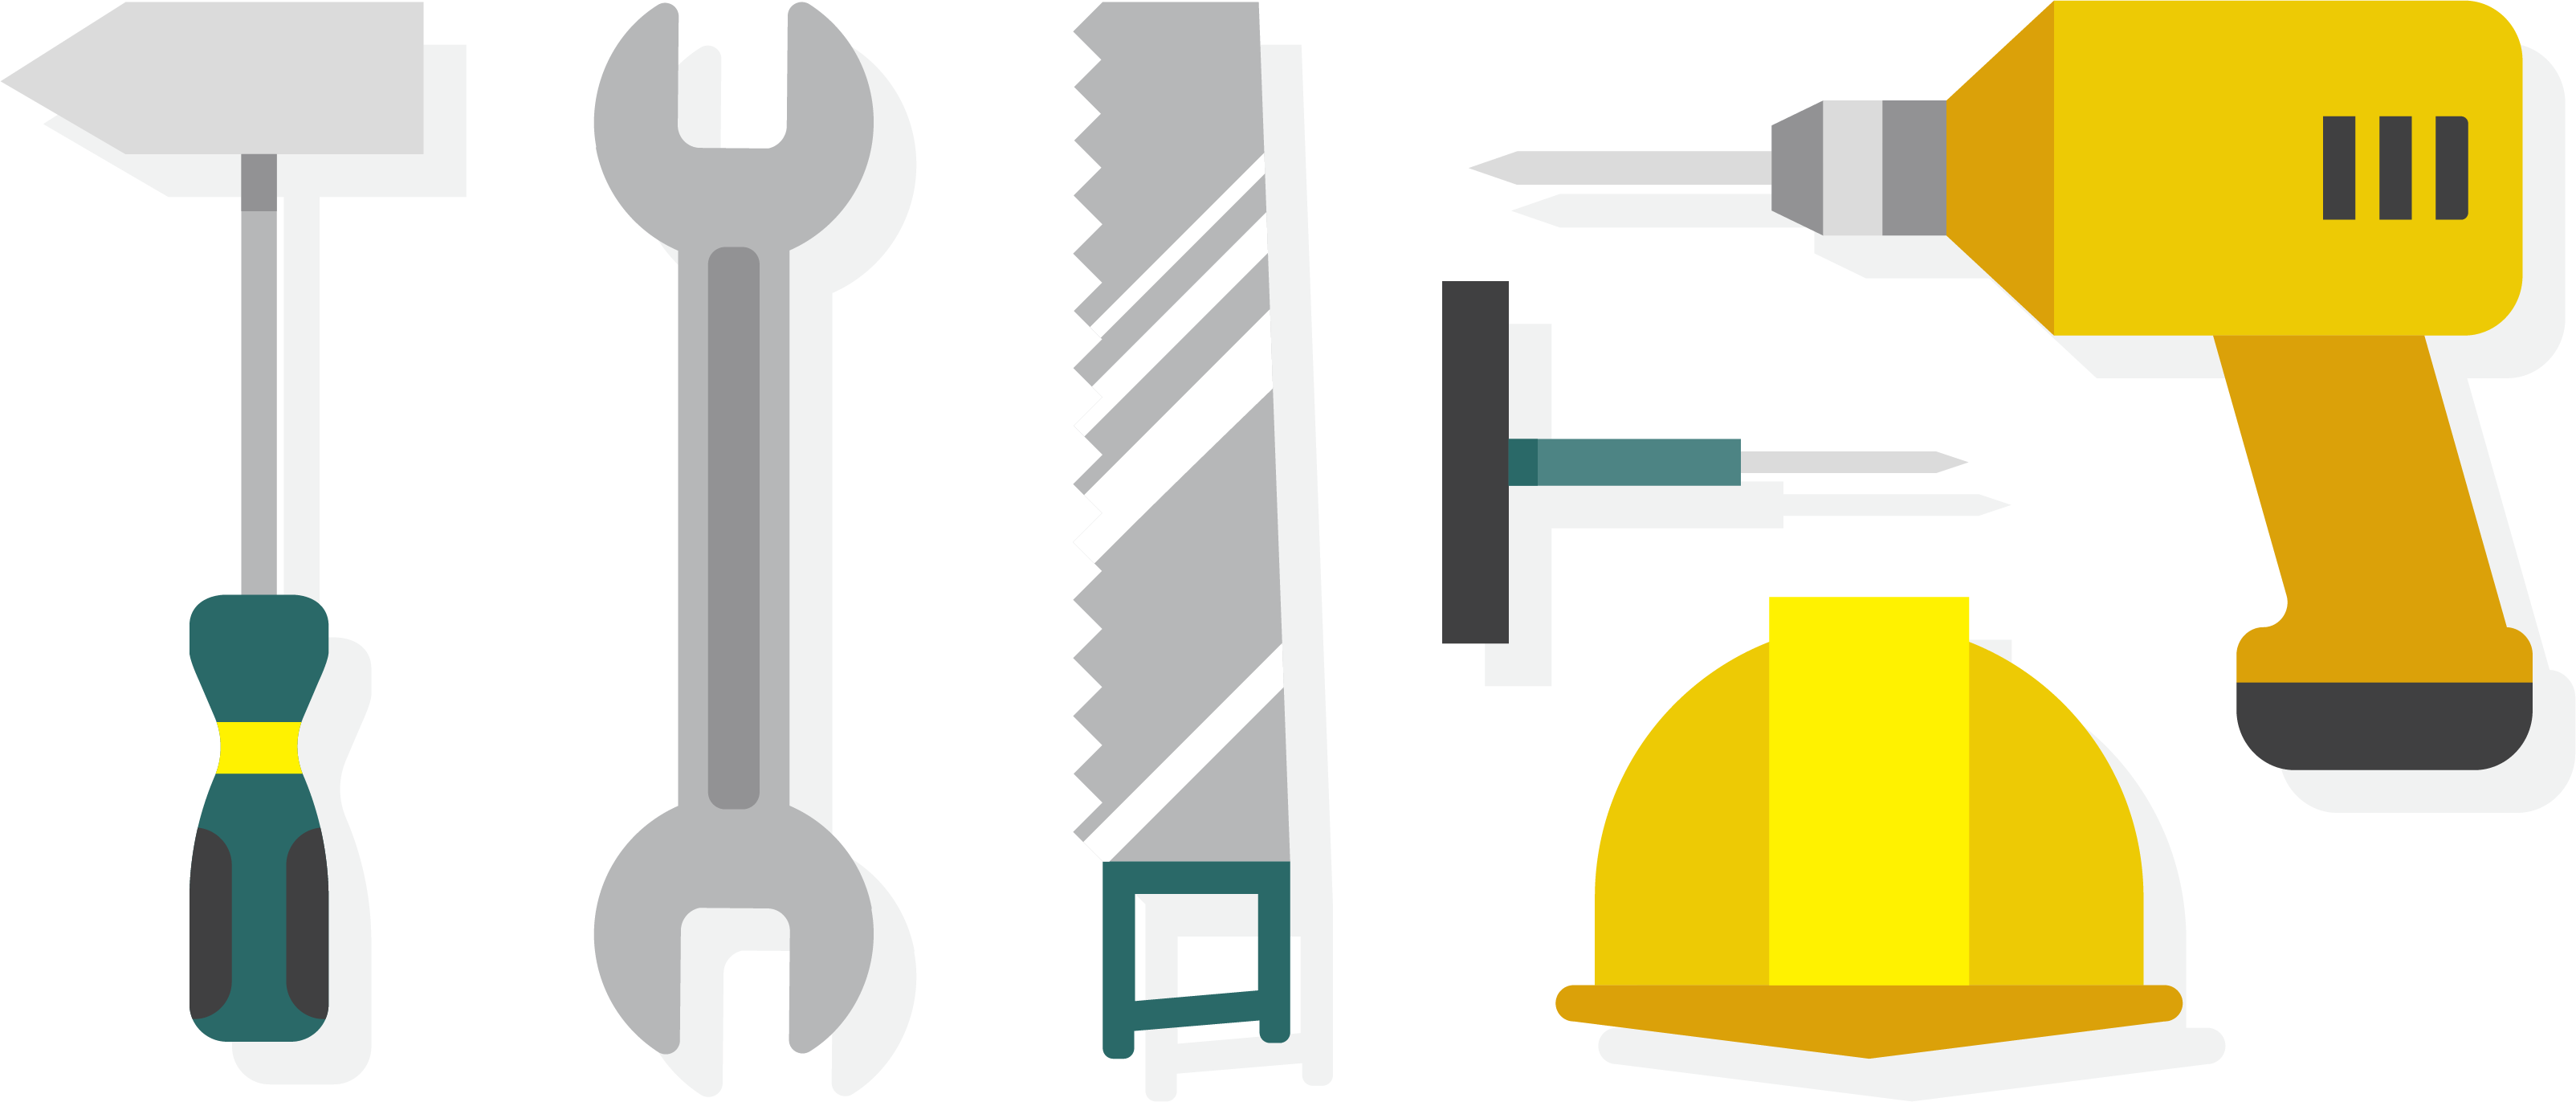 Architectural decoration construction tools. Engineering clipart engineering tool